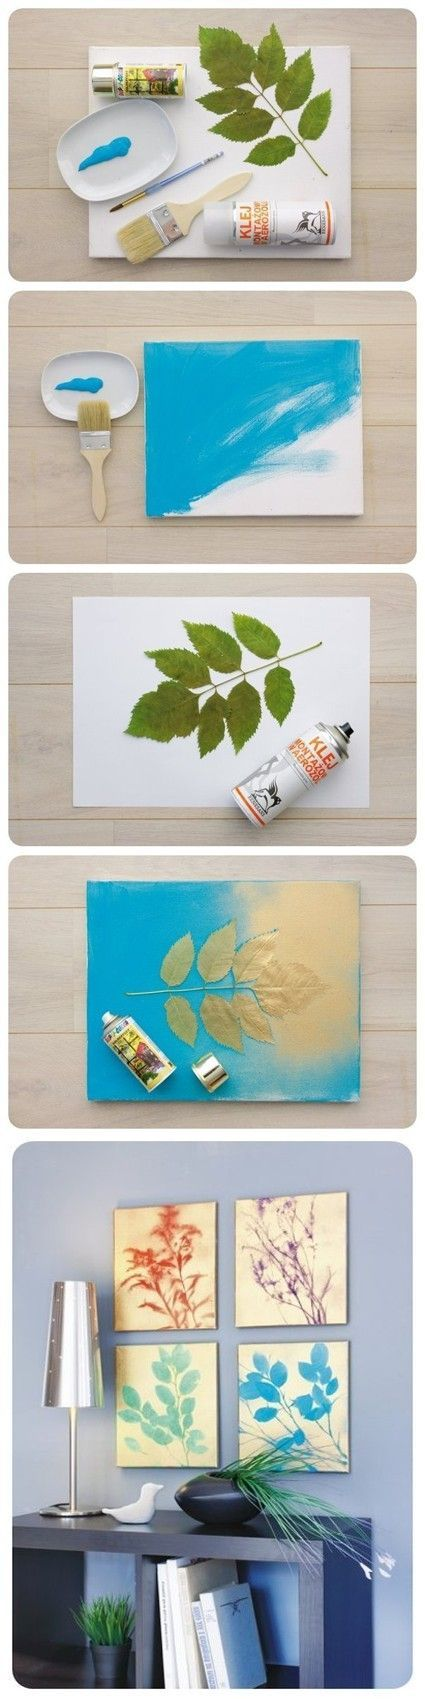 VERY COOL idea for creating art!